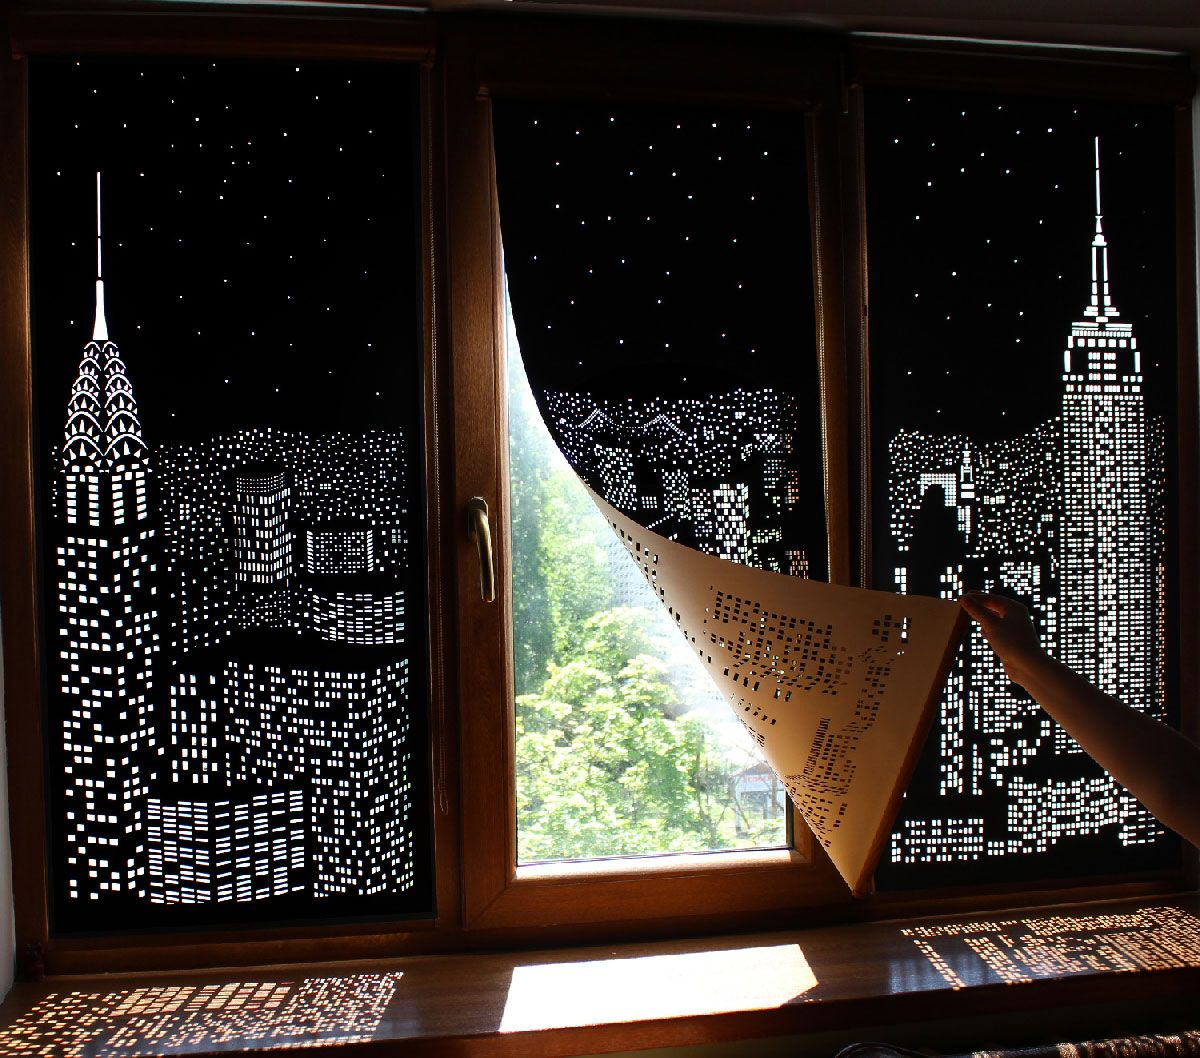 Home gt curtains collection gt modern curtains gt elegant pink un - Buildings And Stars Cut Into Blackout Curtains Turn Your Windows Into Nighttime Cityscapes